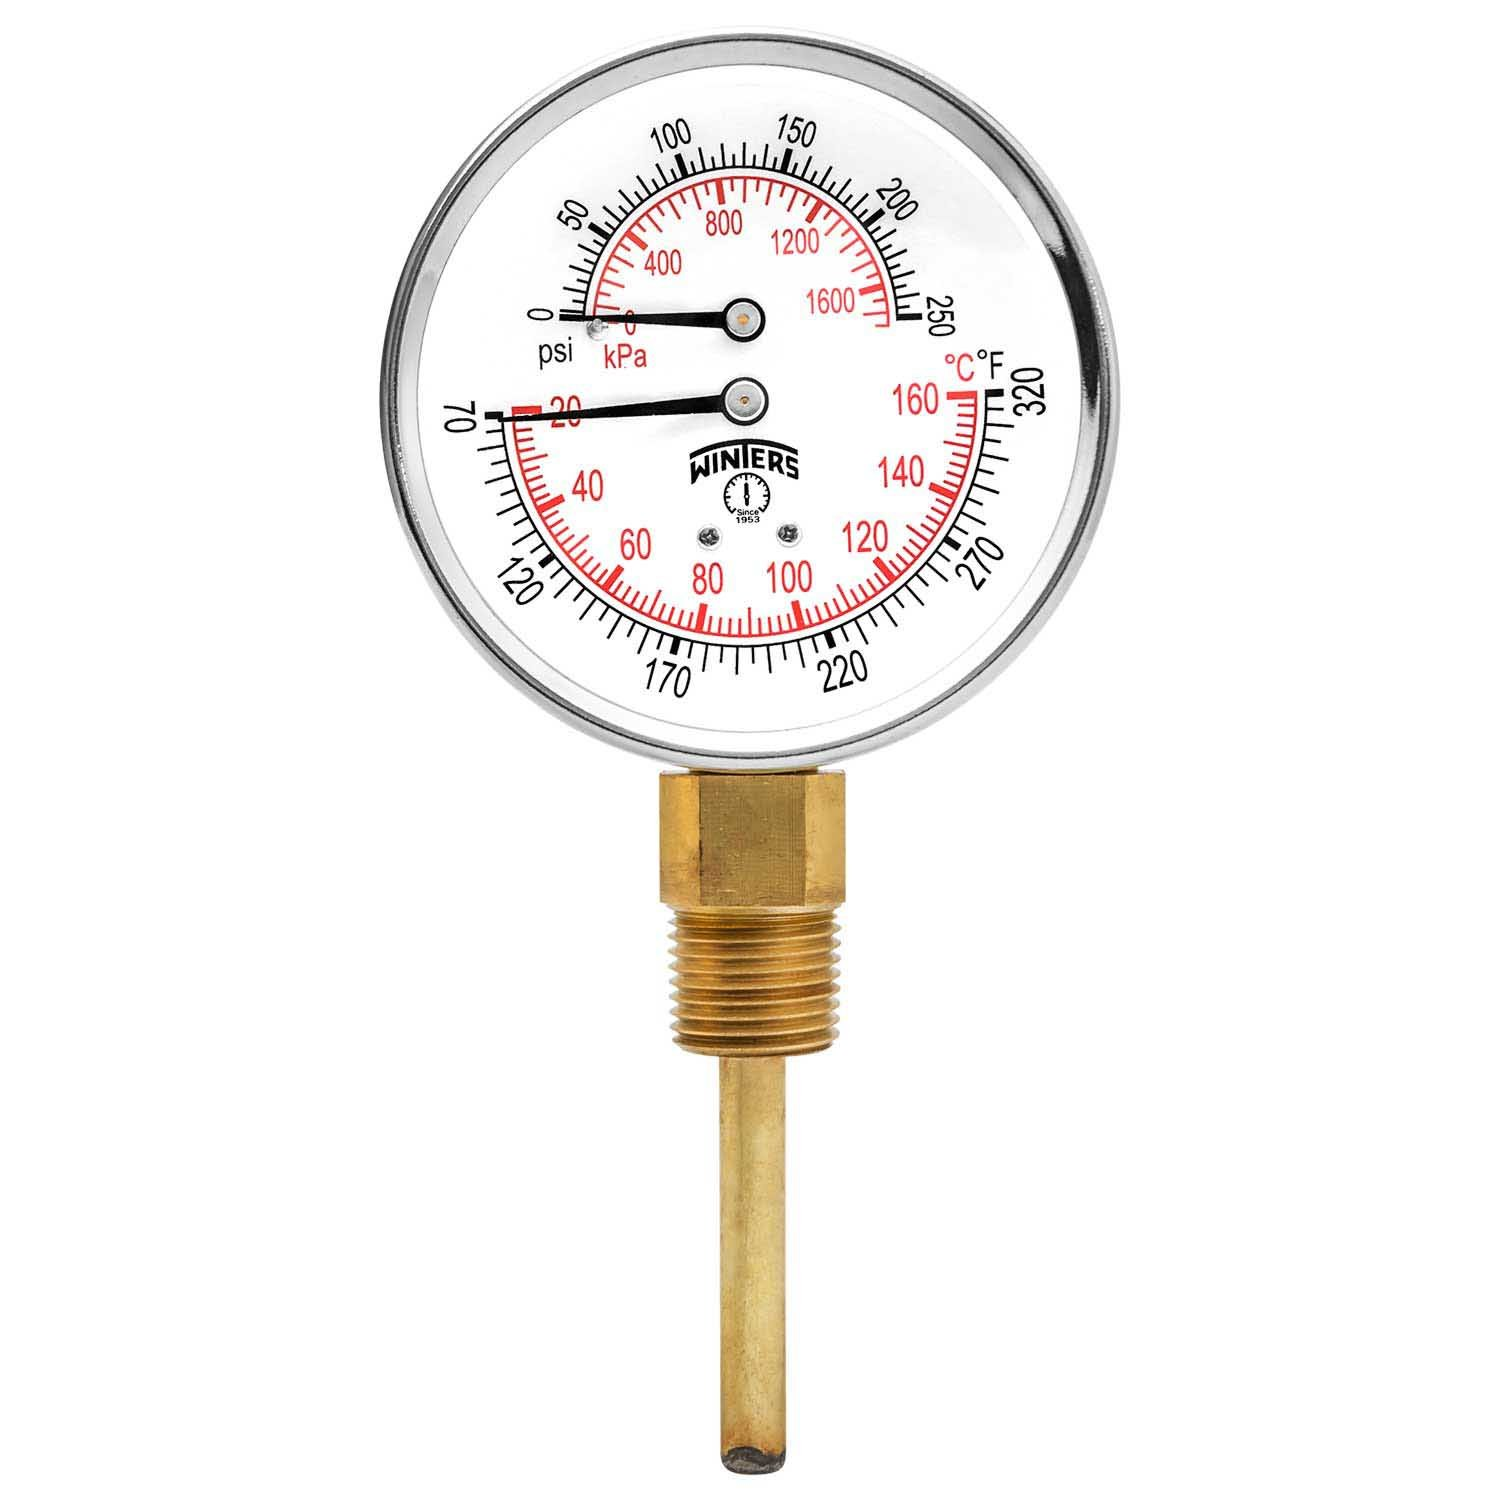 Winters TTD Series Steel Dual Scale Tridicator Thermometer with 2'' Stem, 0-250psi/kpa, 3'' Dial Display, ±3-2-3% Accuracy, 1/2'' NPT Bottom Mount, 70-320 Deg F/C